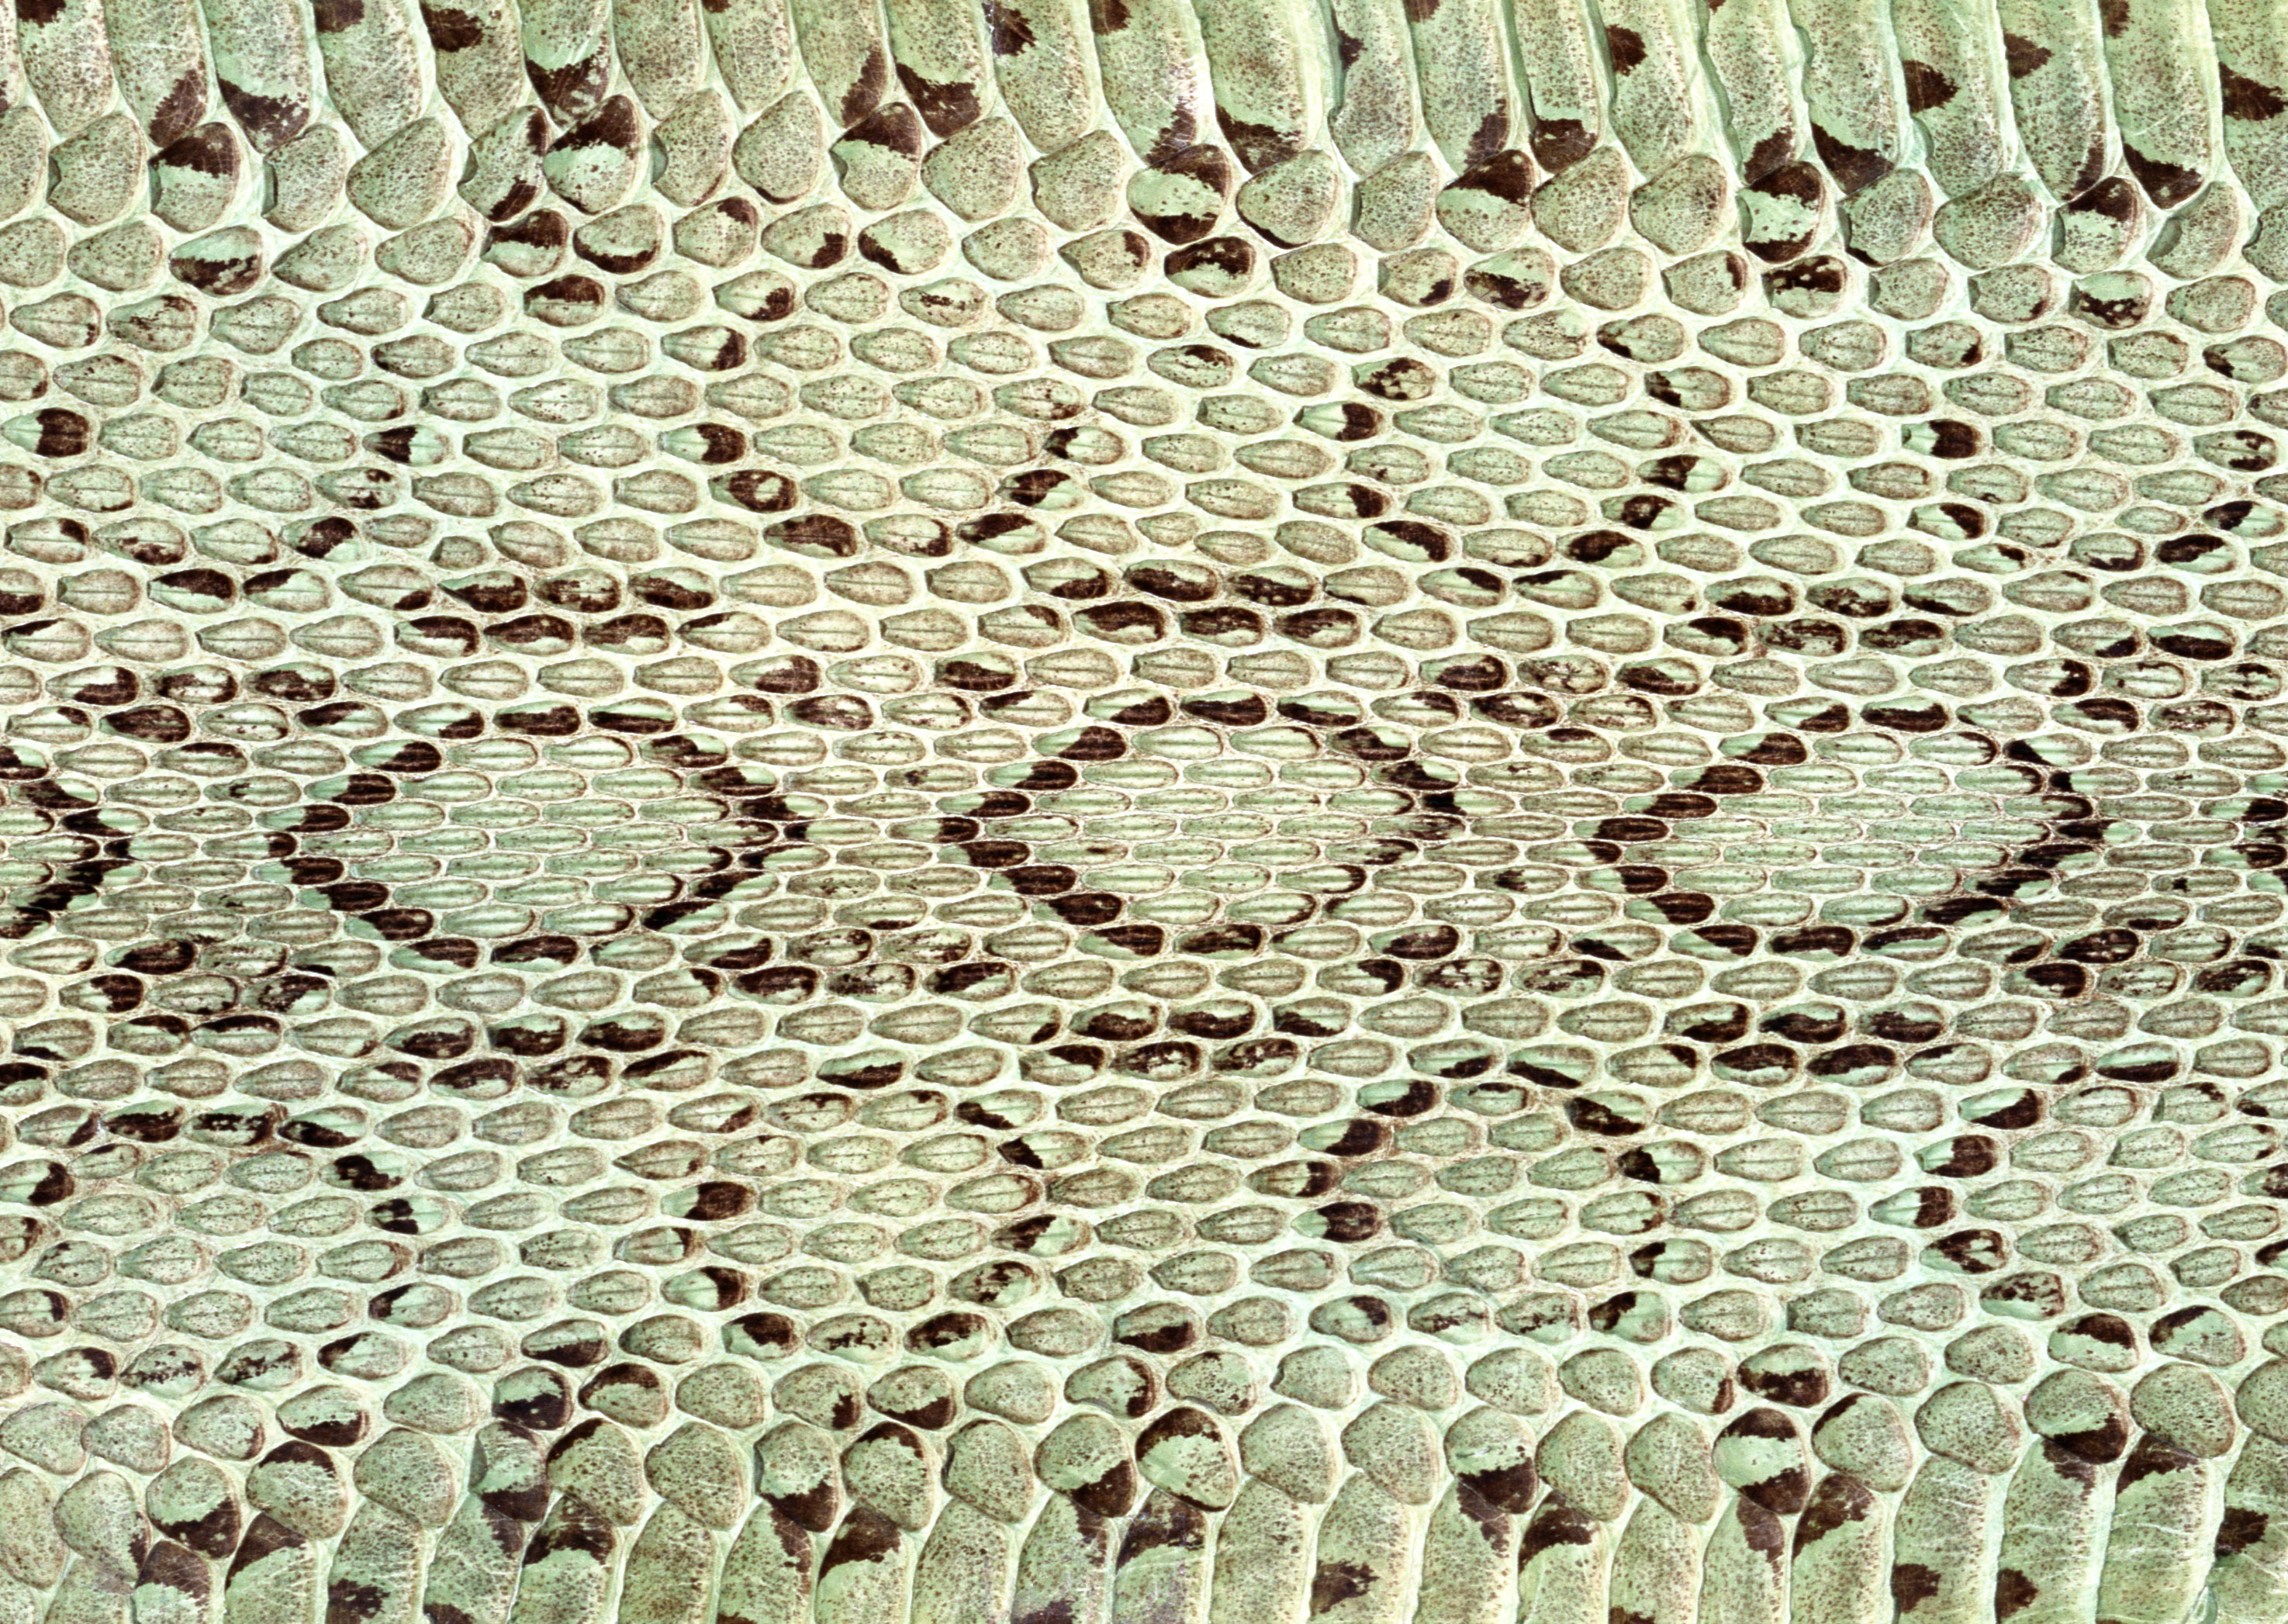 Snake leather texture background image download, snakes